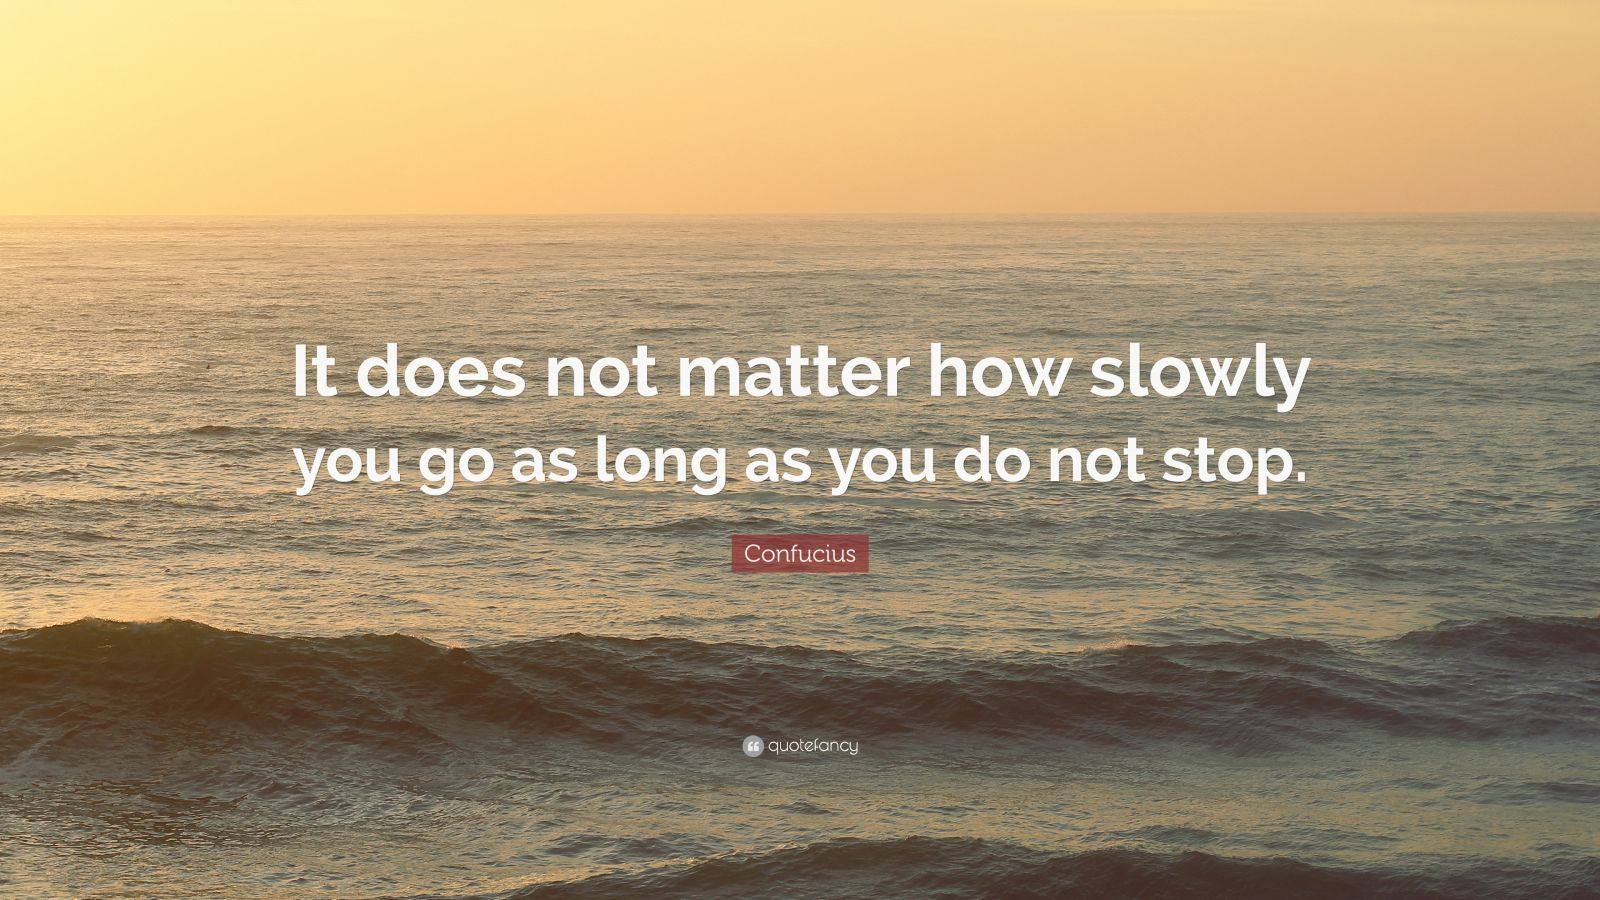 Love Inspiring Quotes Wallpaper Confucius Quote It Does Not Matter How Slowly You Go As